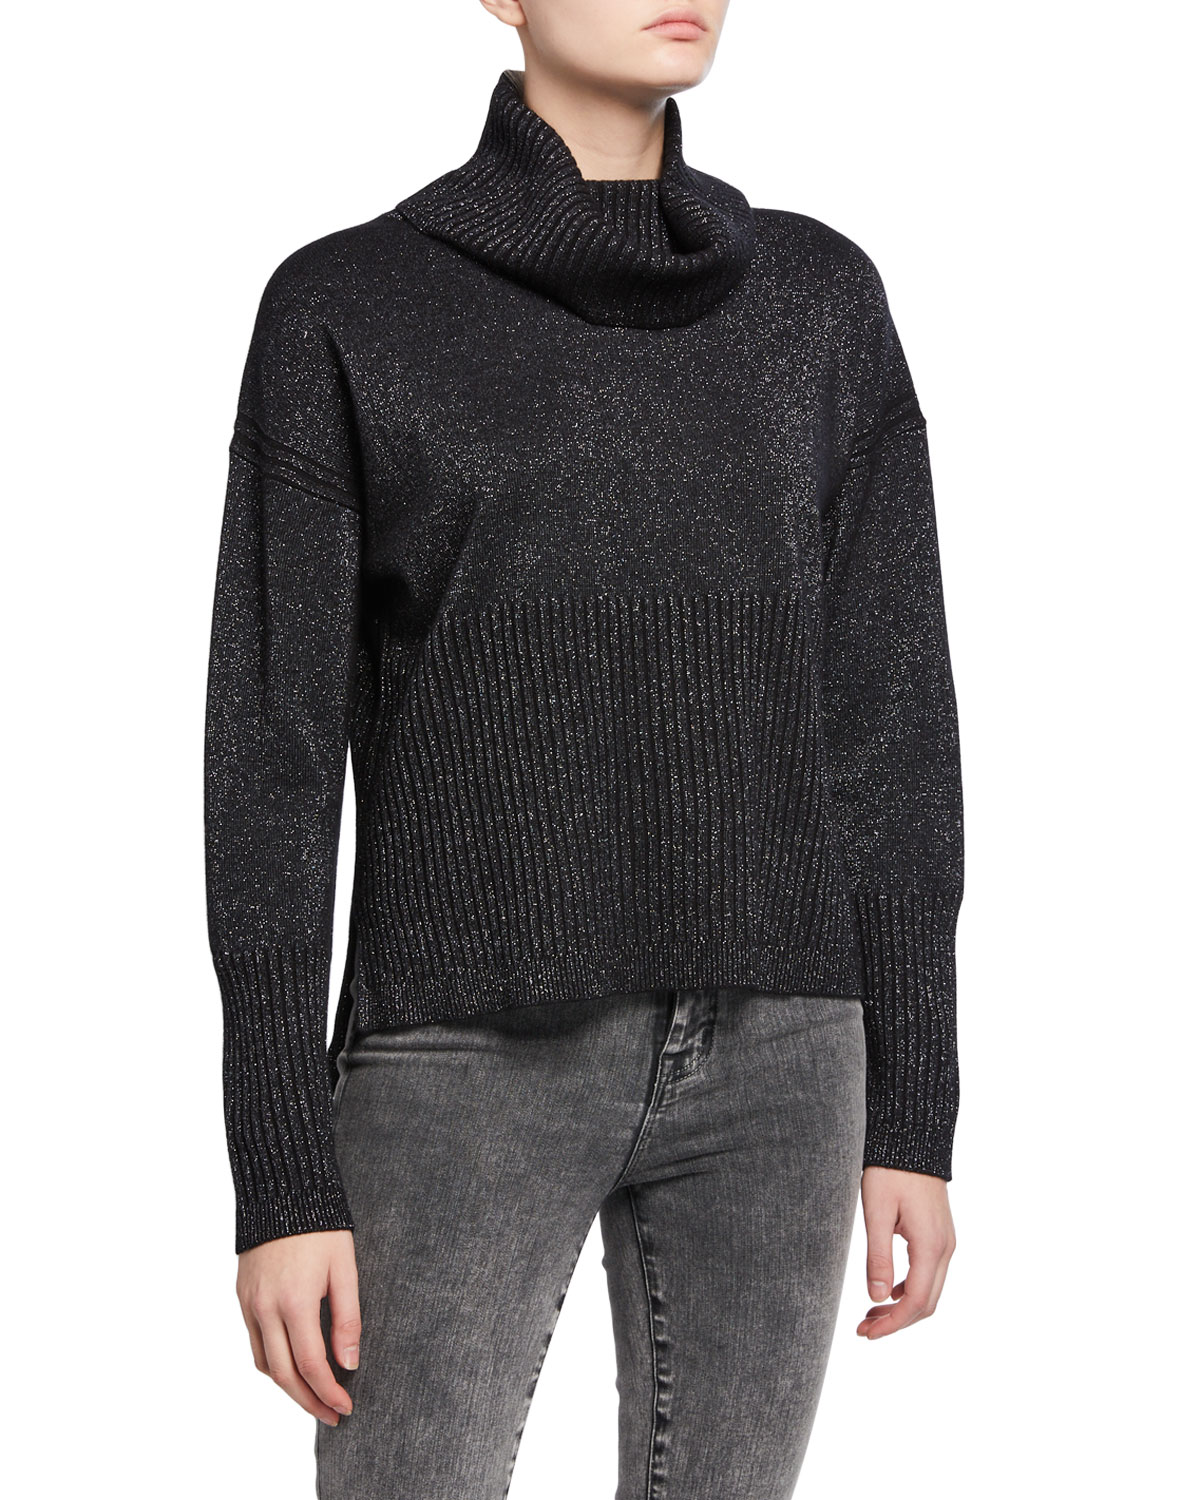 Derek Lam 10 Crosby Sweaters BOND METALLIC TURTLENECK SWEATER